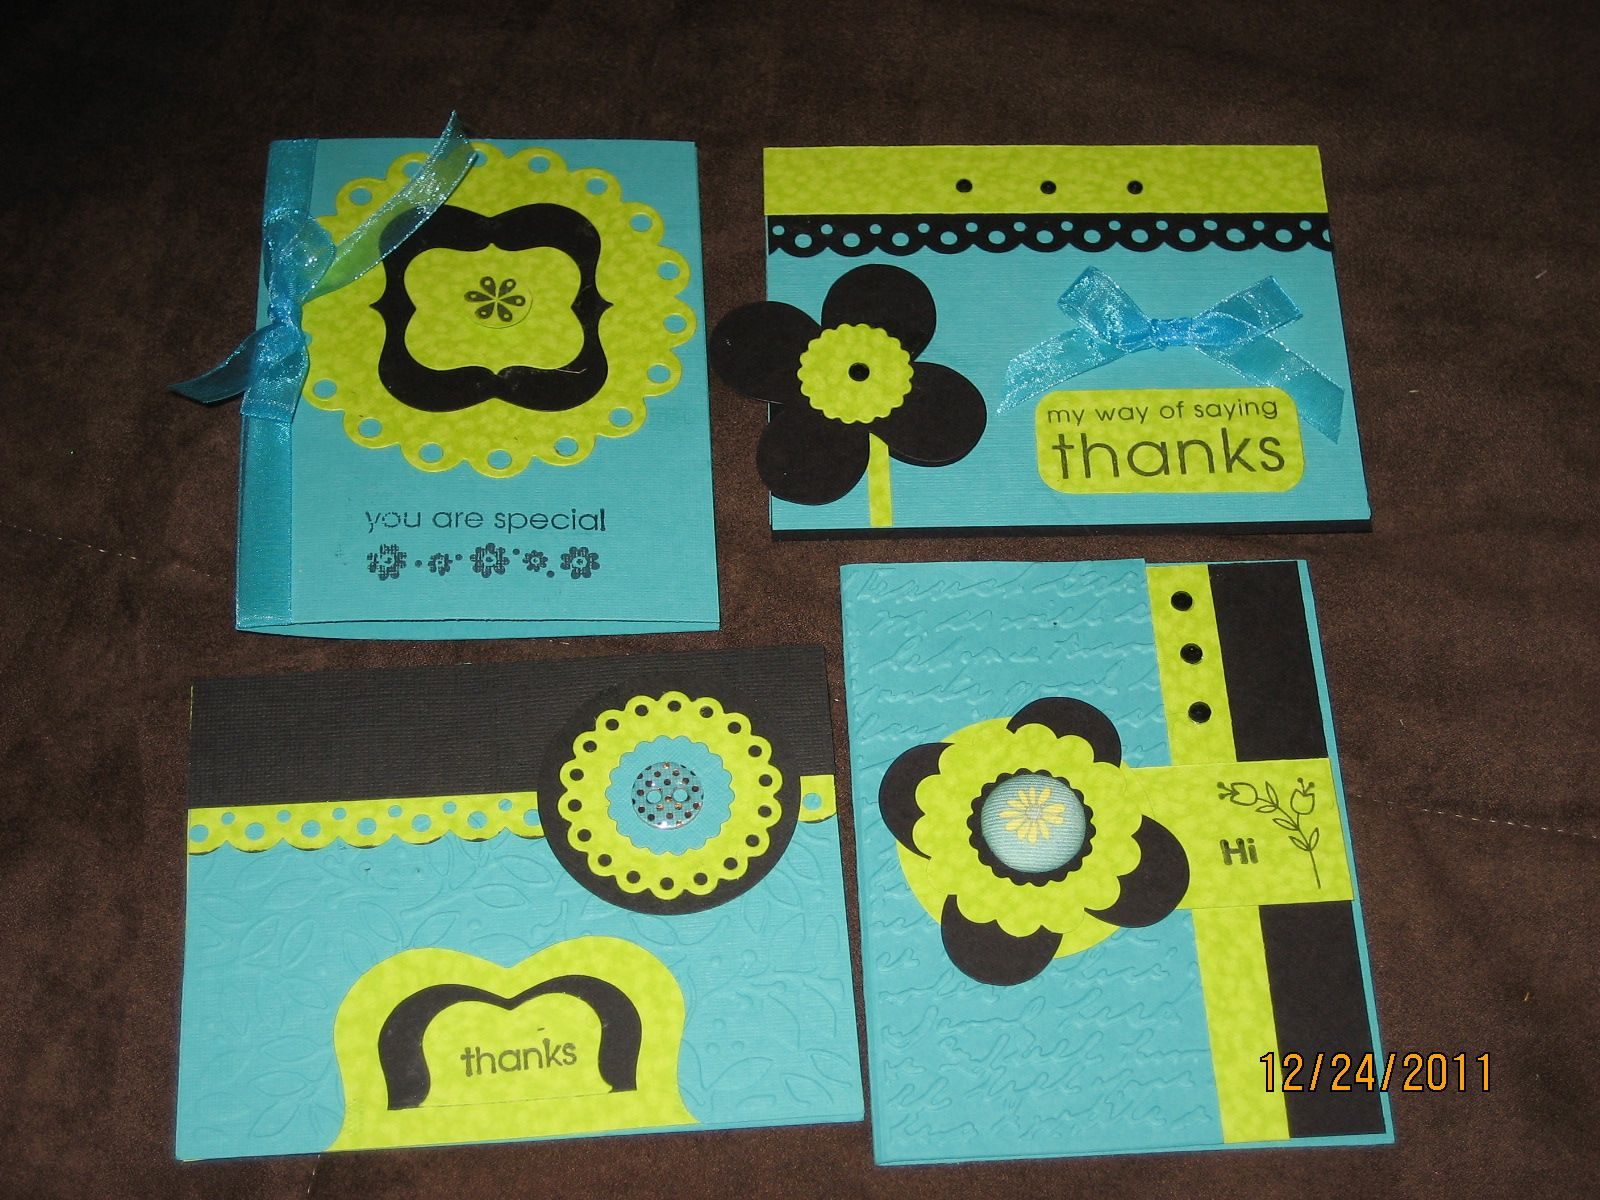 thank you cards- made by me